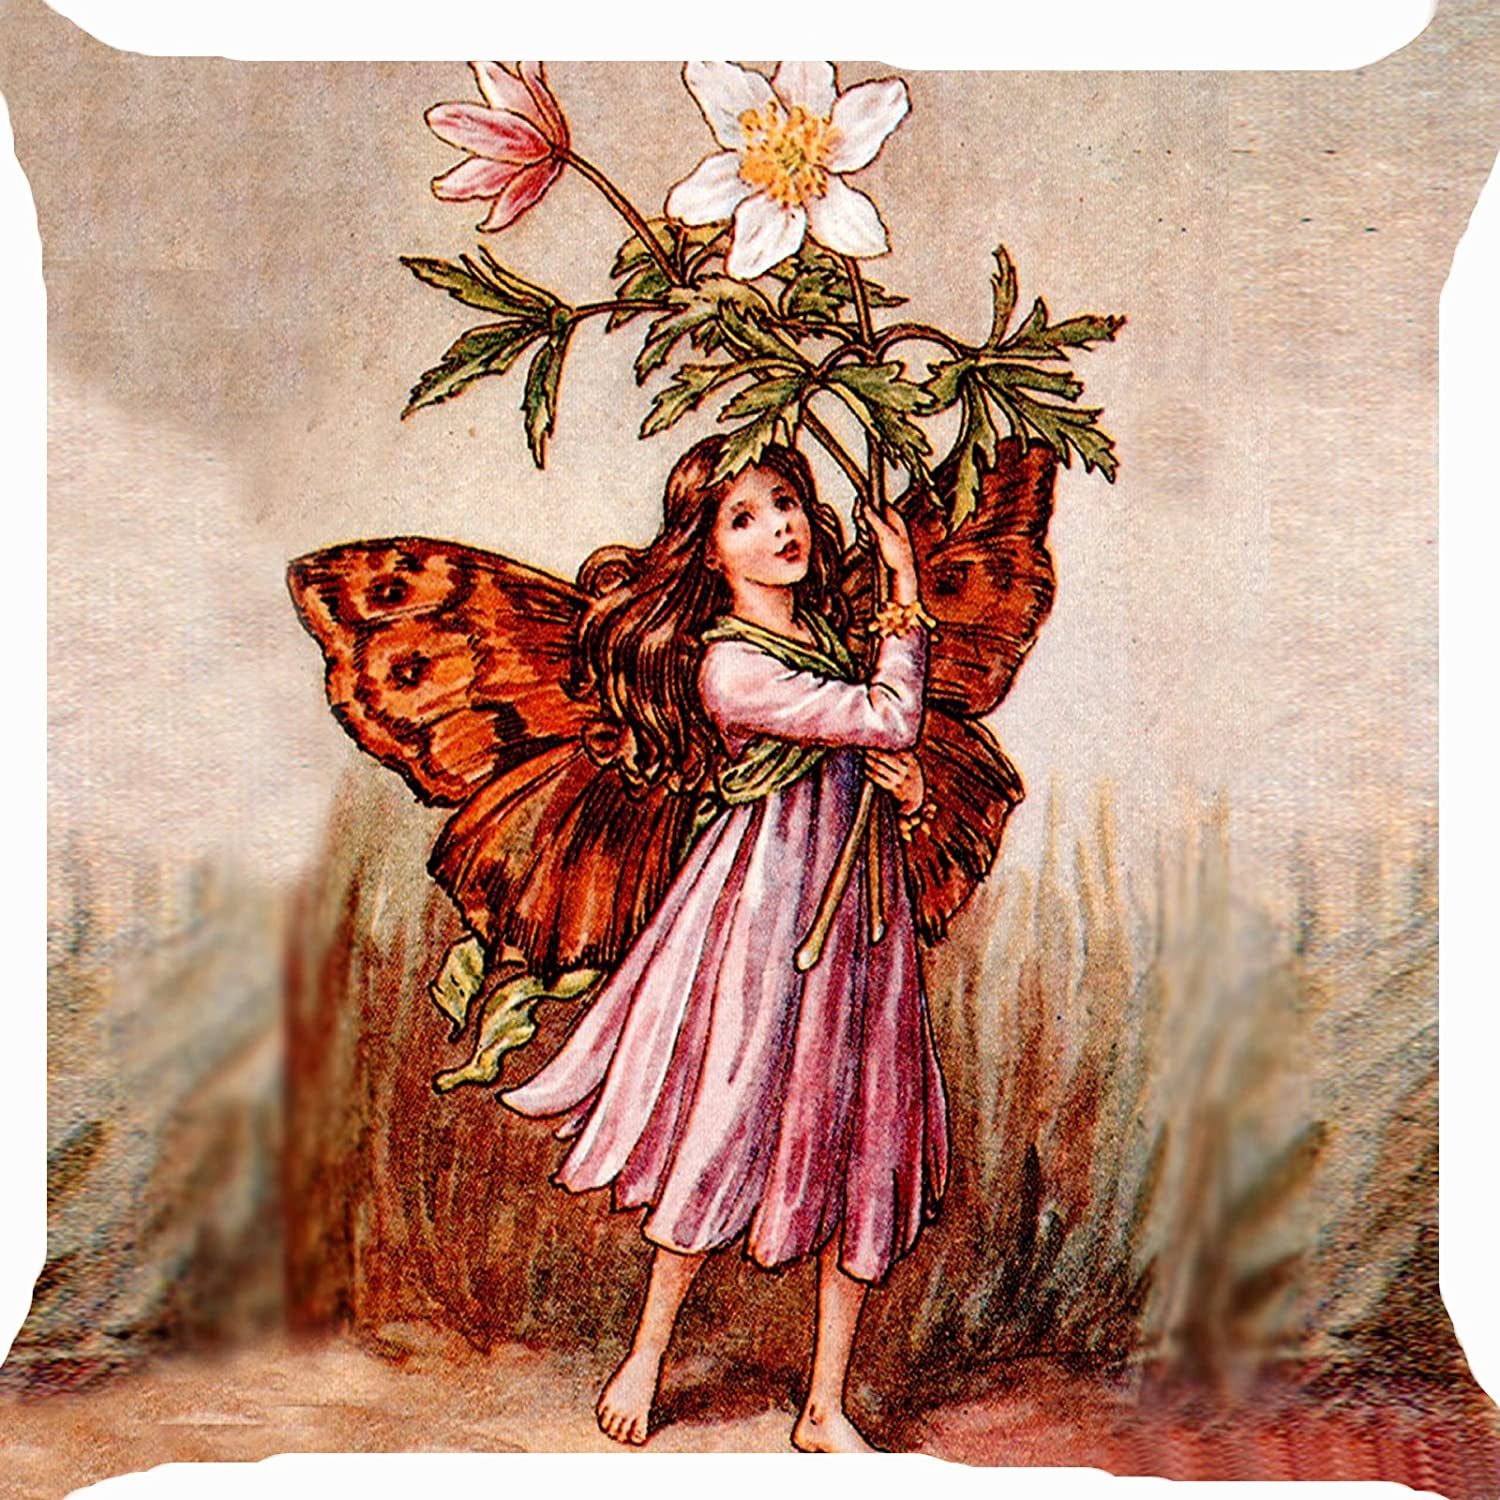 Cushion cover throw pillow case 18 inch retro vintage wind flower fairy angel garden playing both sides image zipper